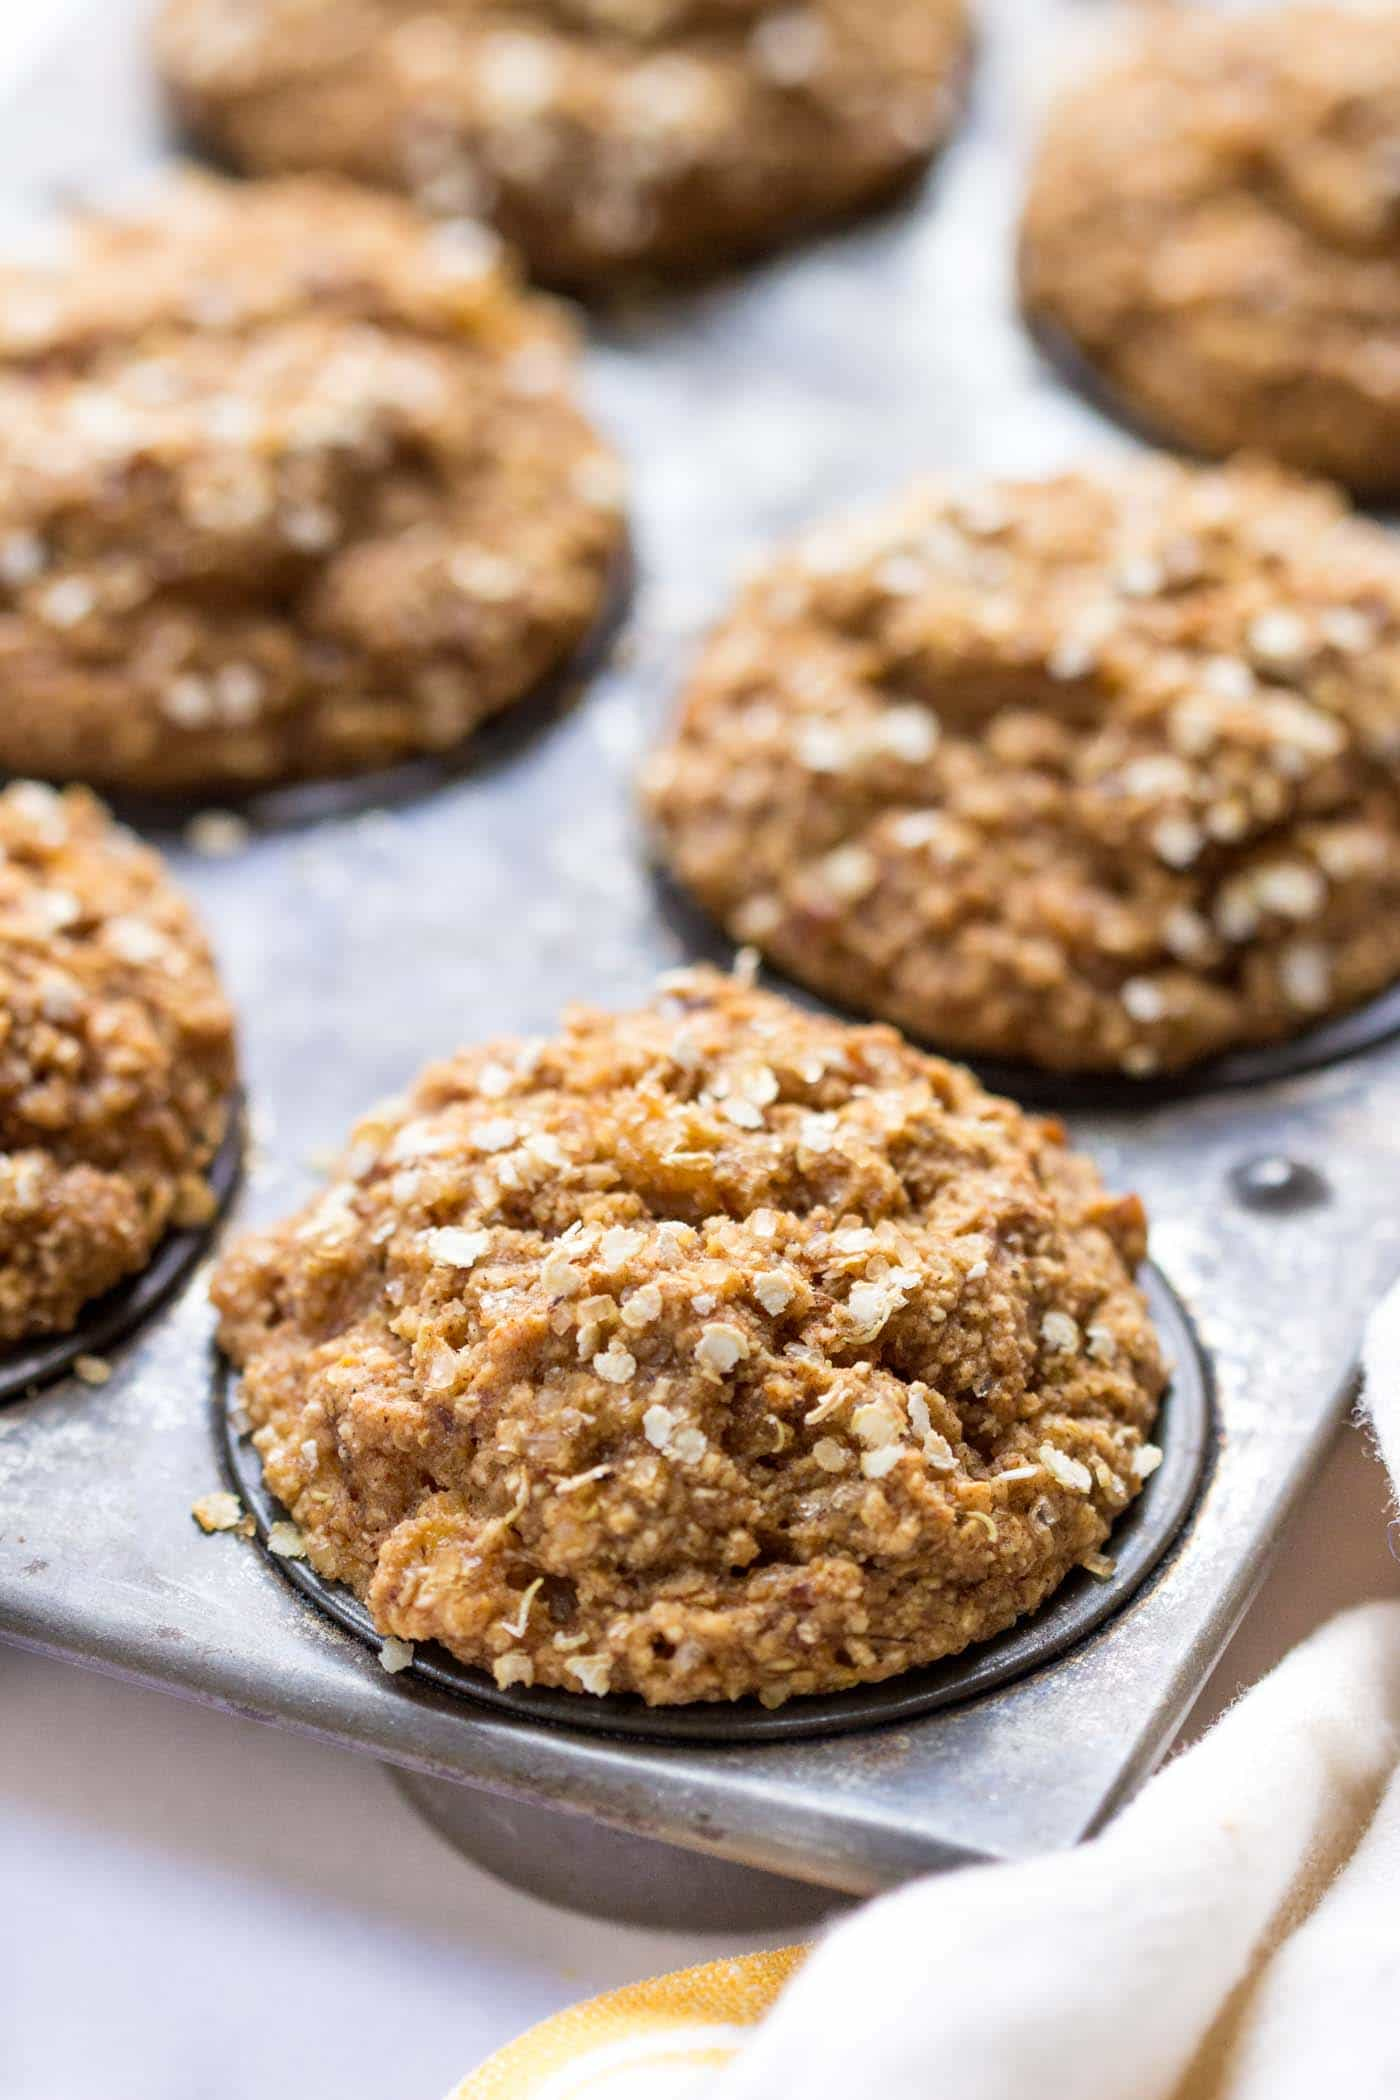 SPICED QUINOA MUFFINS with coconut yogurt, banana and oats -- no refined sugar, gluten-free AND vegan!